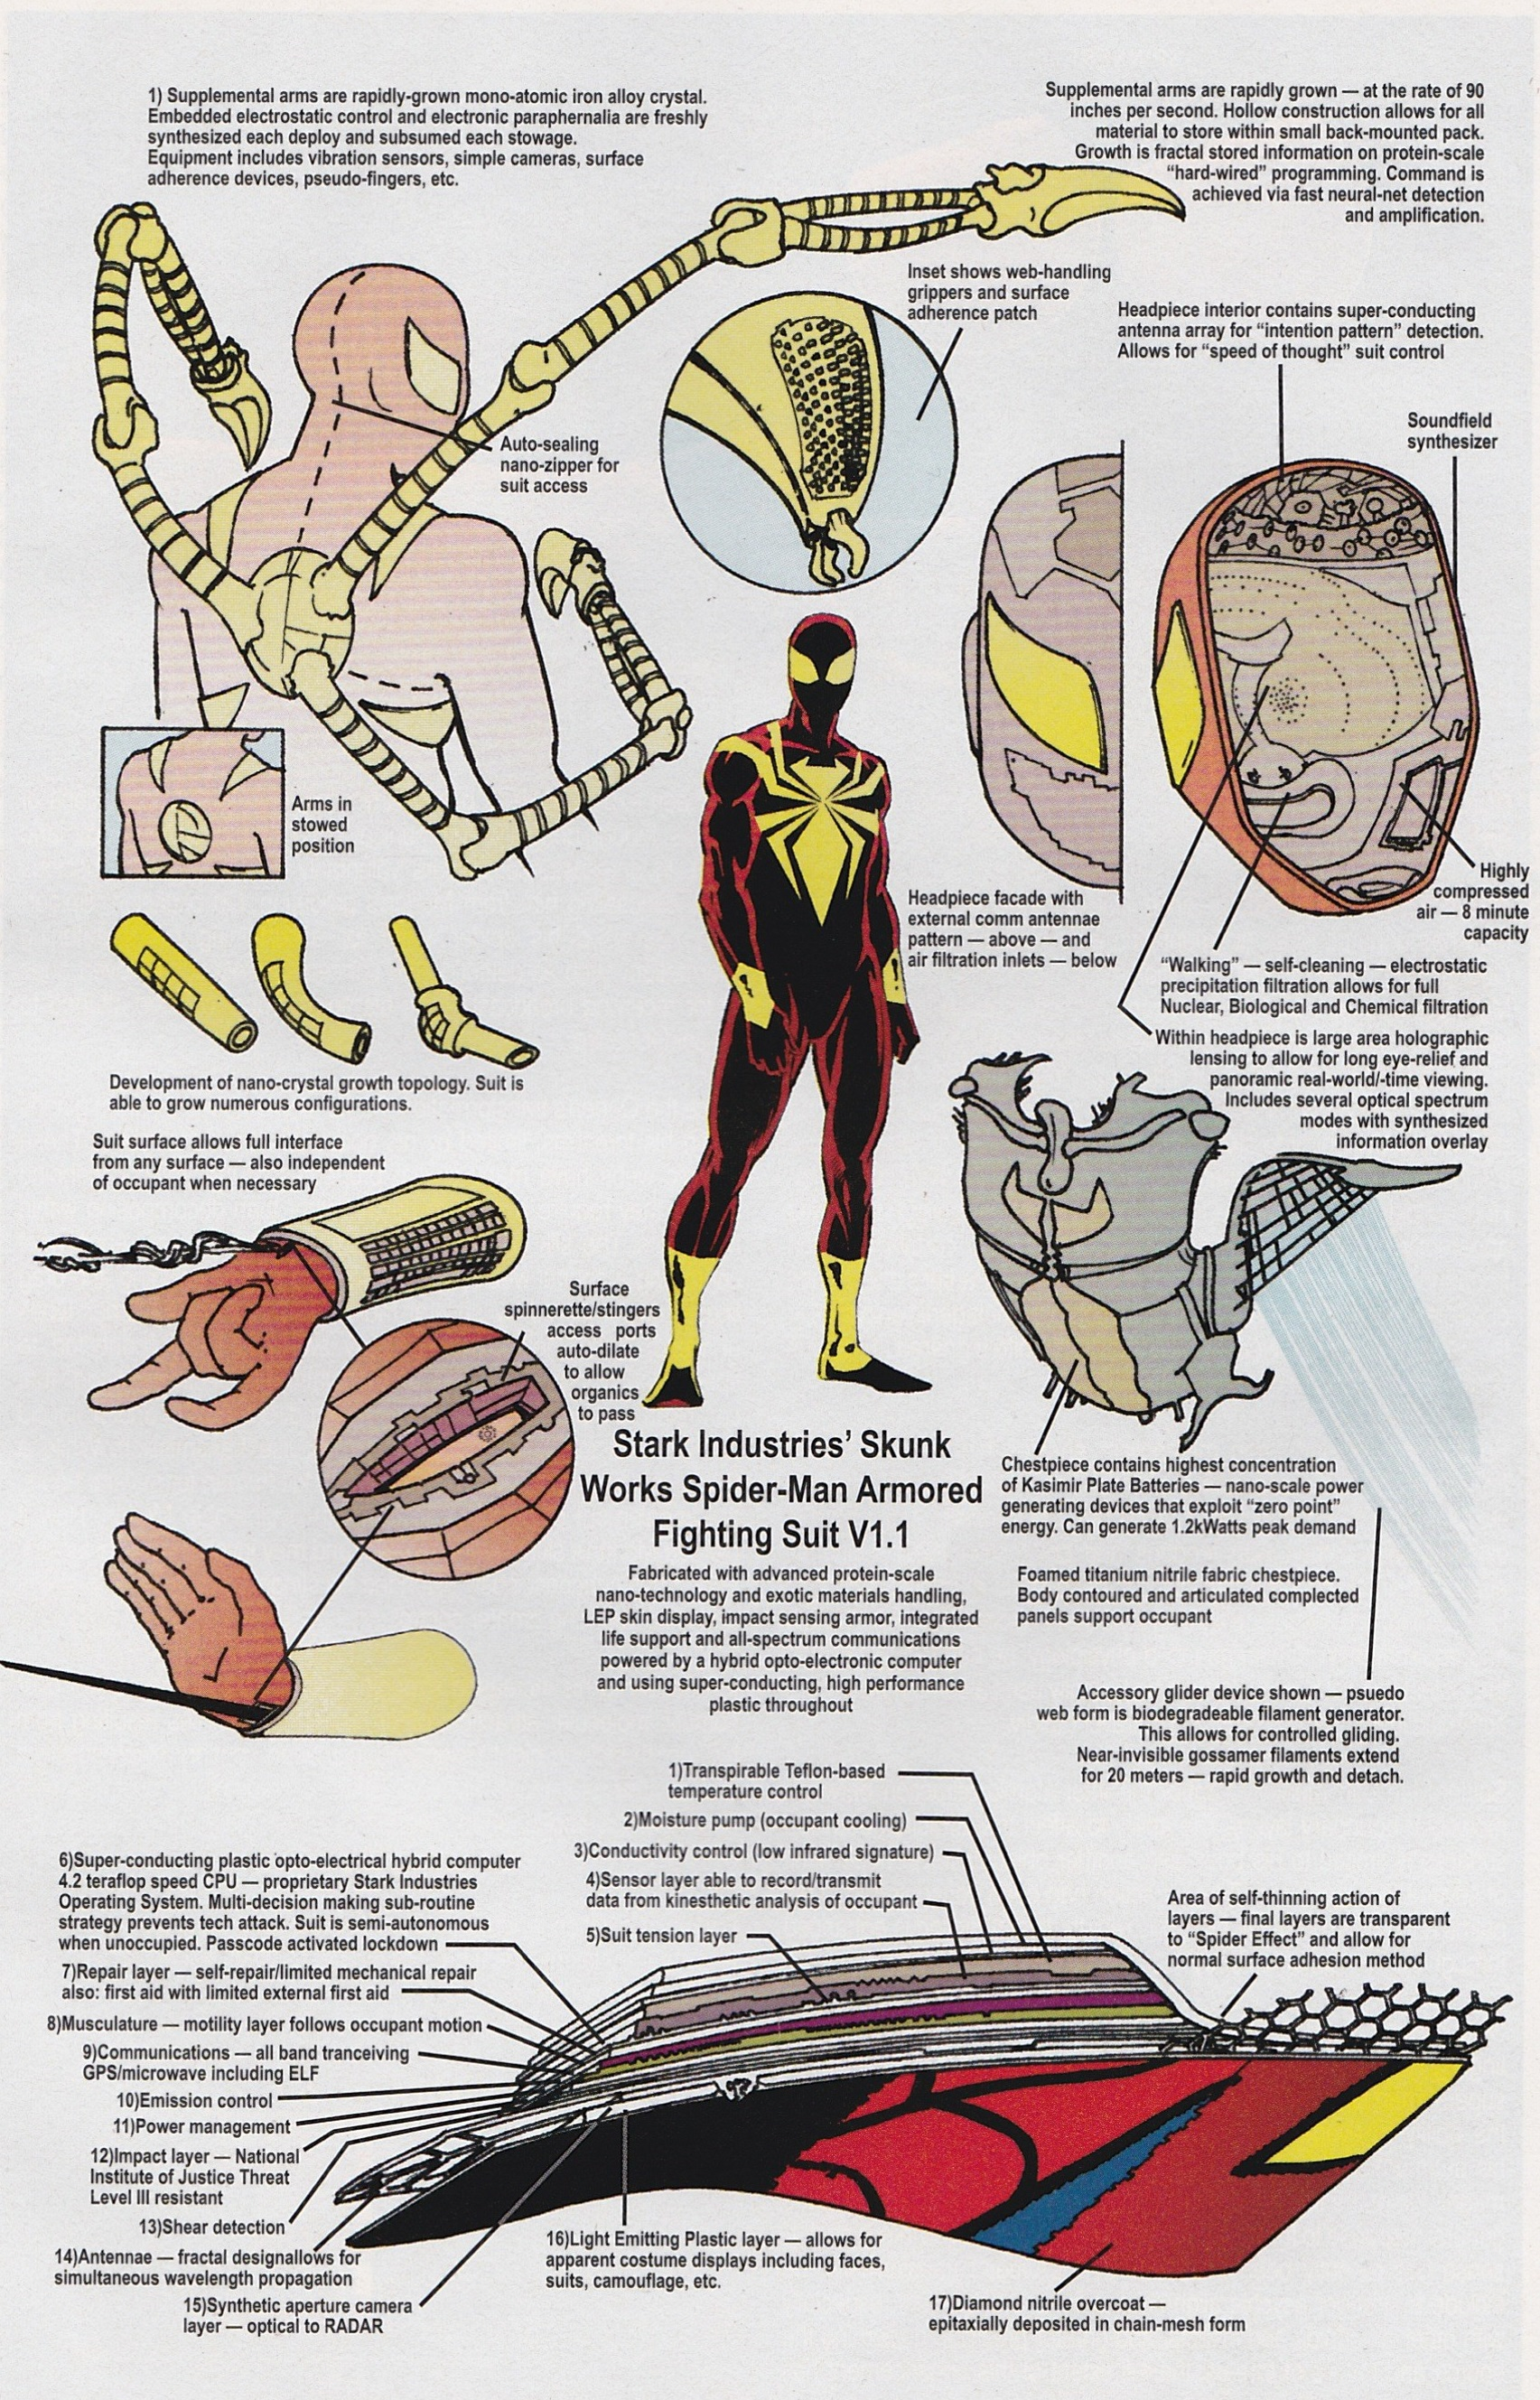 Iron Spider Armor V1.1 From Official Handbook Of The Marvel Universe Vol 5  Spider Man   Back In Black